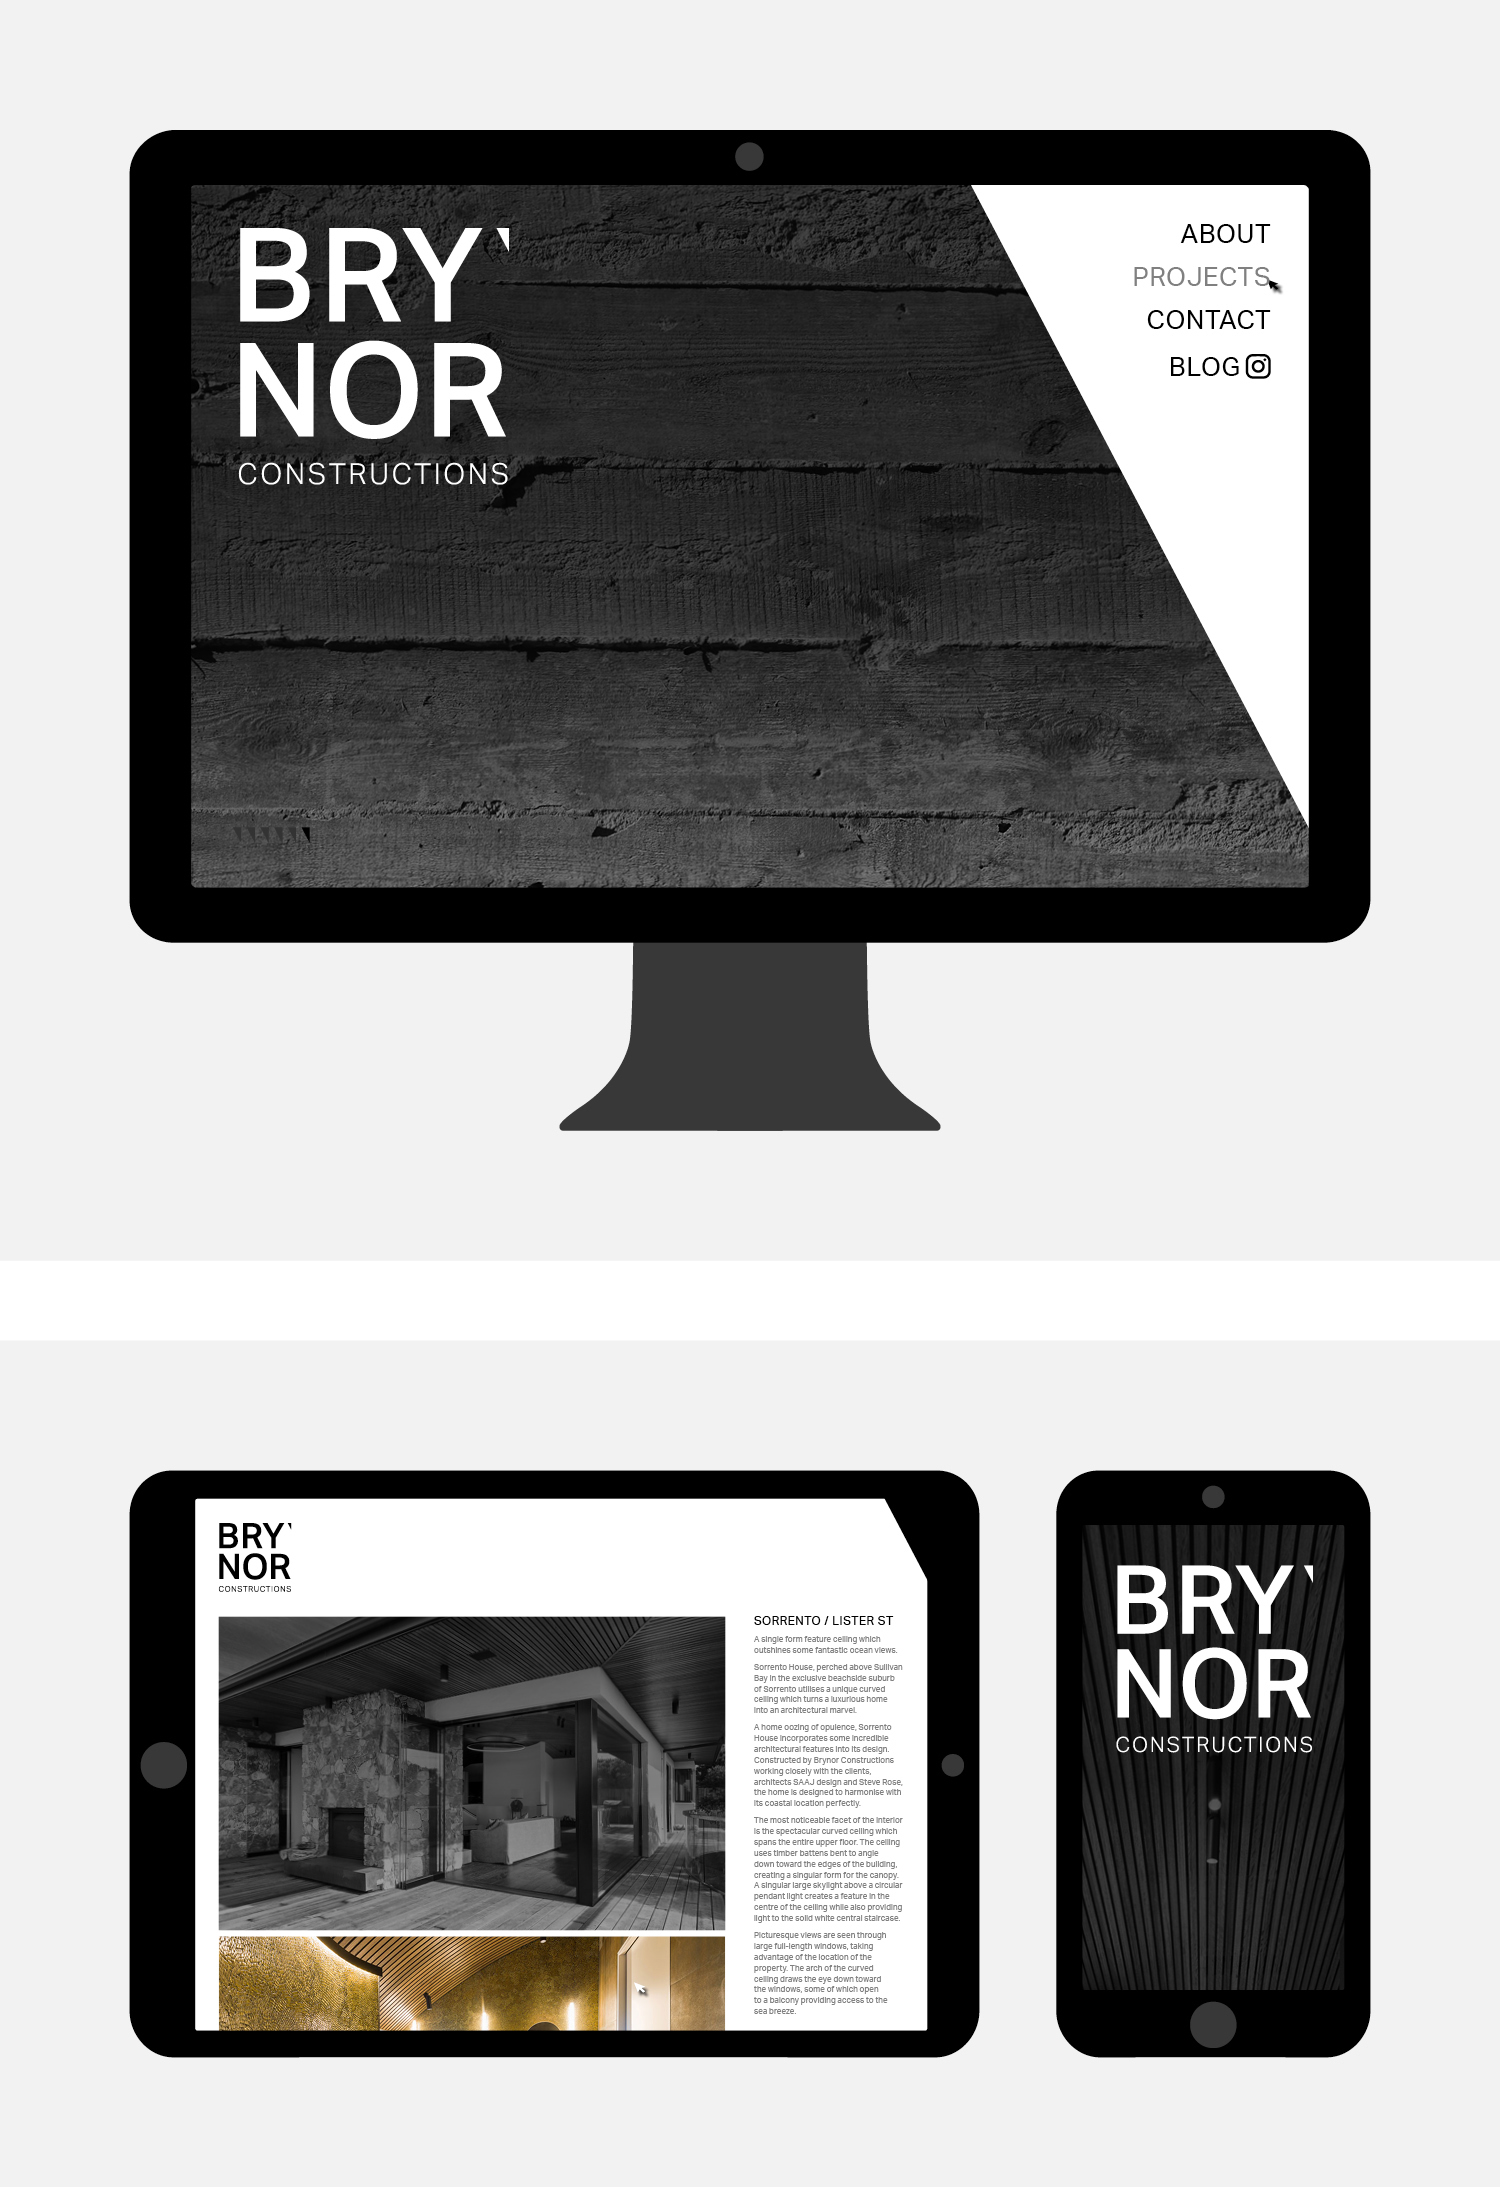 Gray+Design+Brynor+Constructions+website-4.jpg